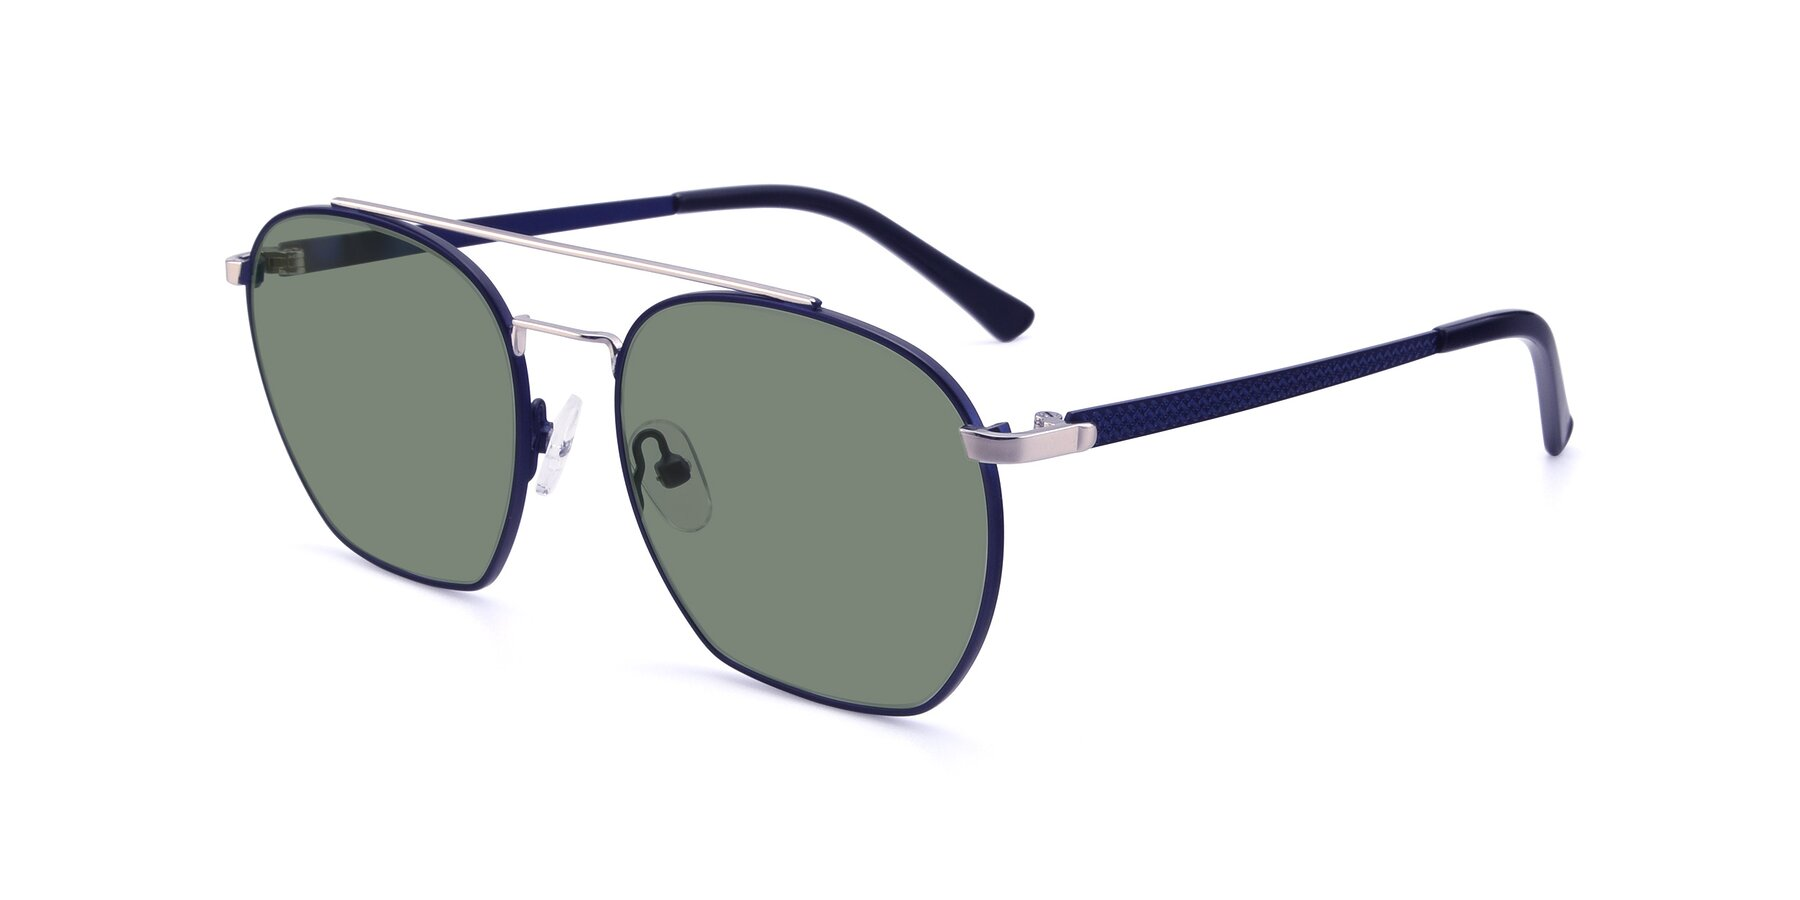 Angle of 9425 in Blue-Silver with Medium Green Tinted Lenses